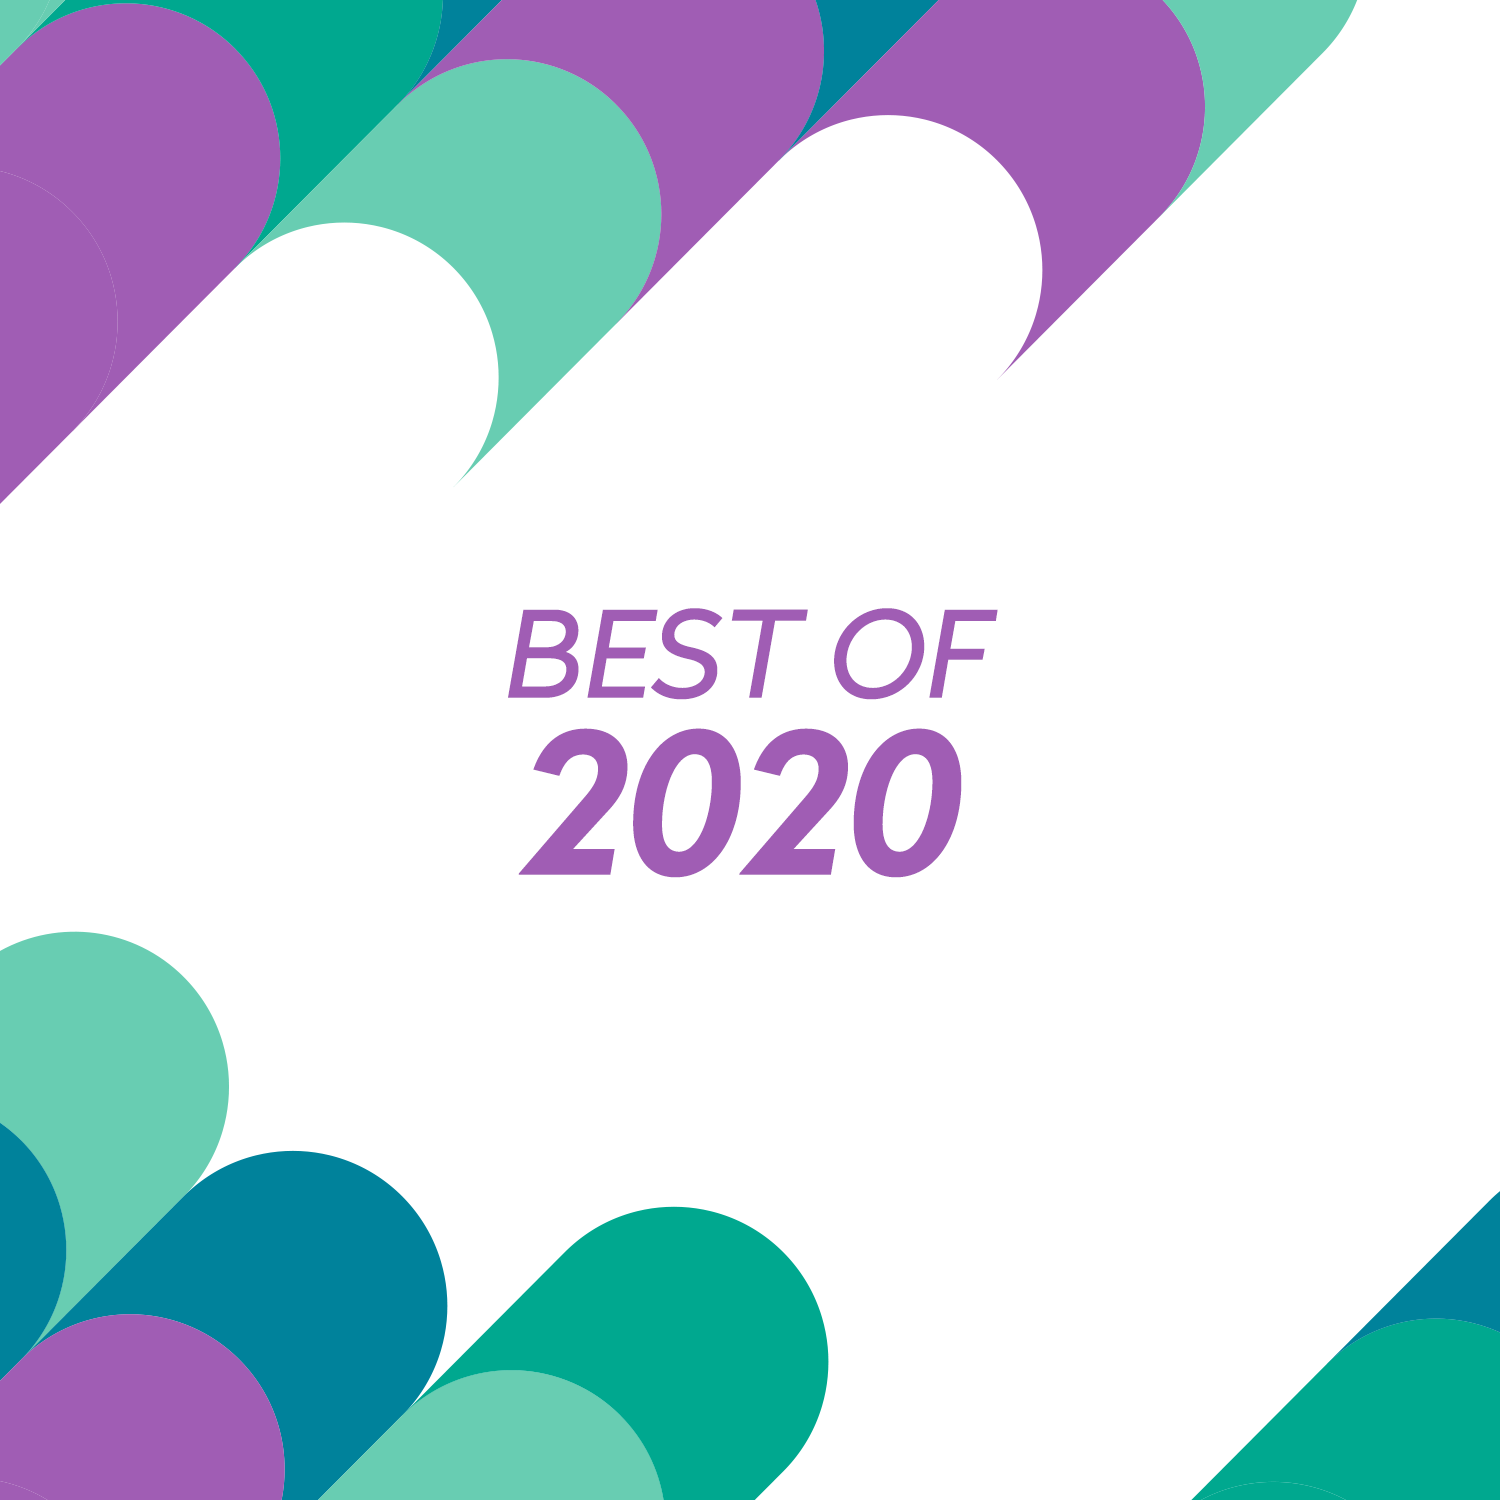 Best Of 2020 - Logo émission  [RTS - RTS]